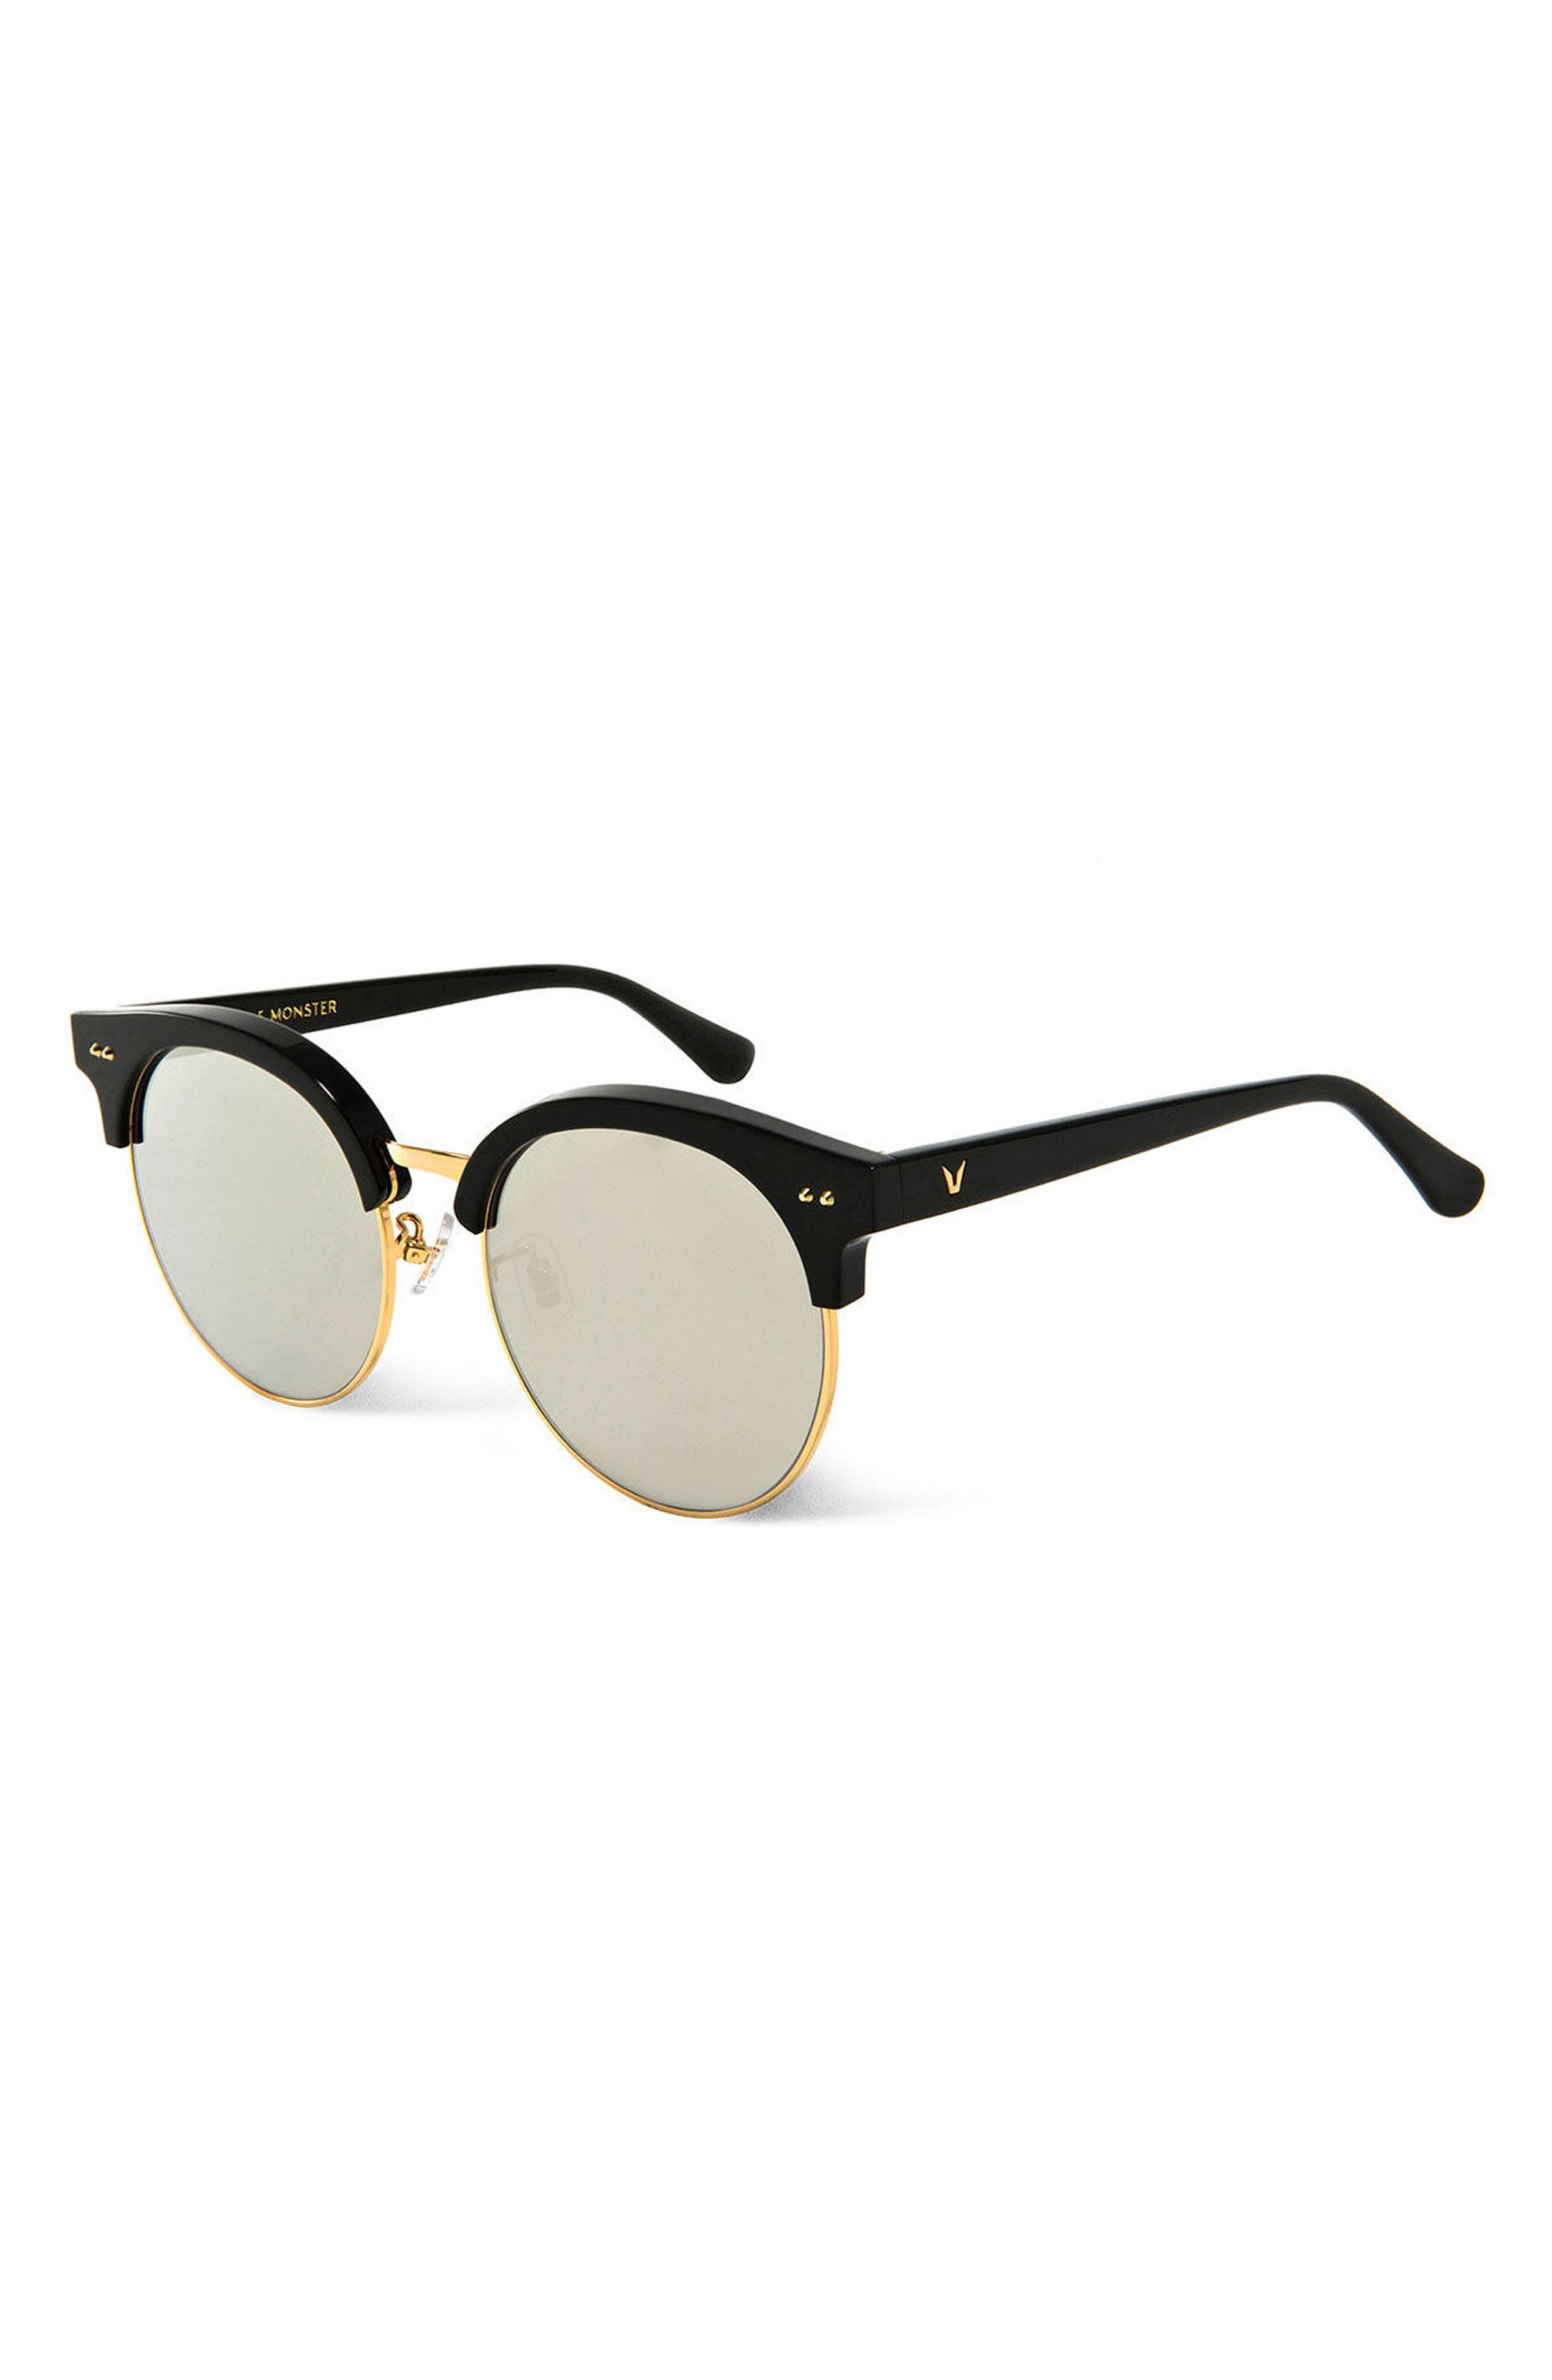 Moon Cut 55mm Sunglasses,                             Alternate thumbnail 2, color,                             Black/Gold